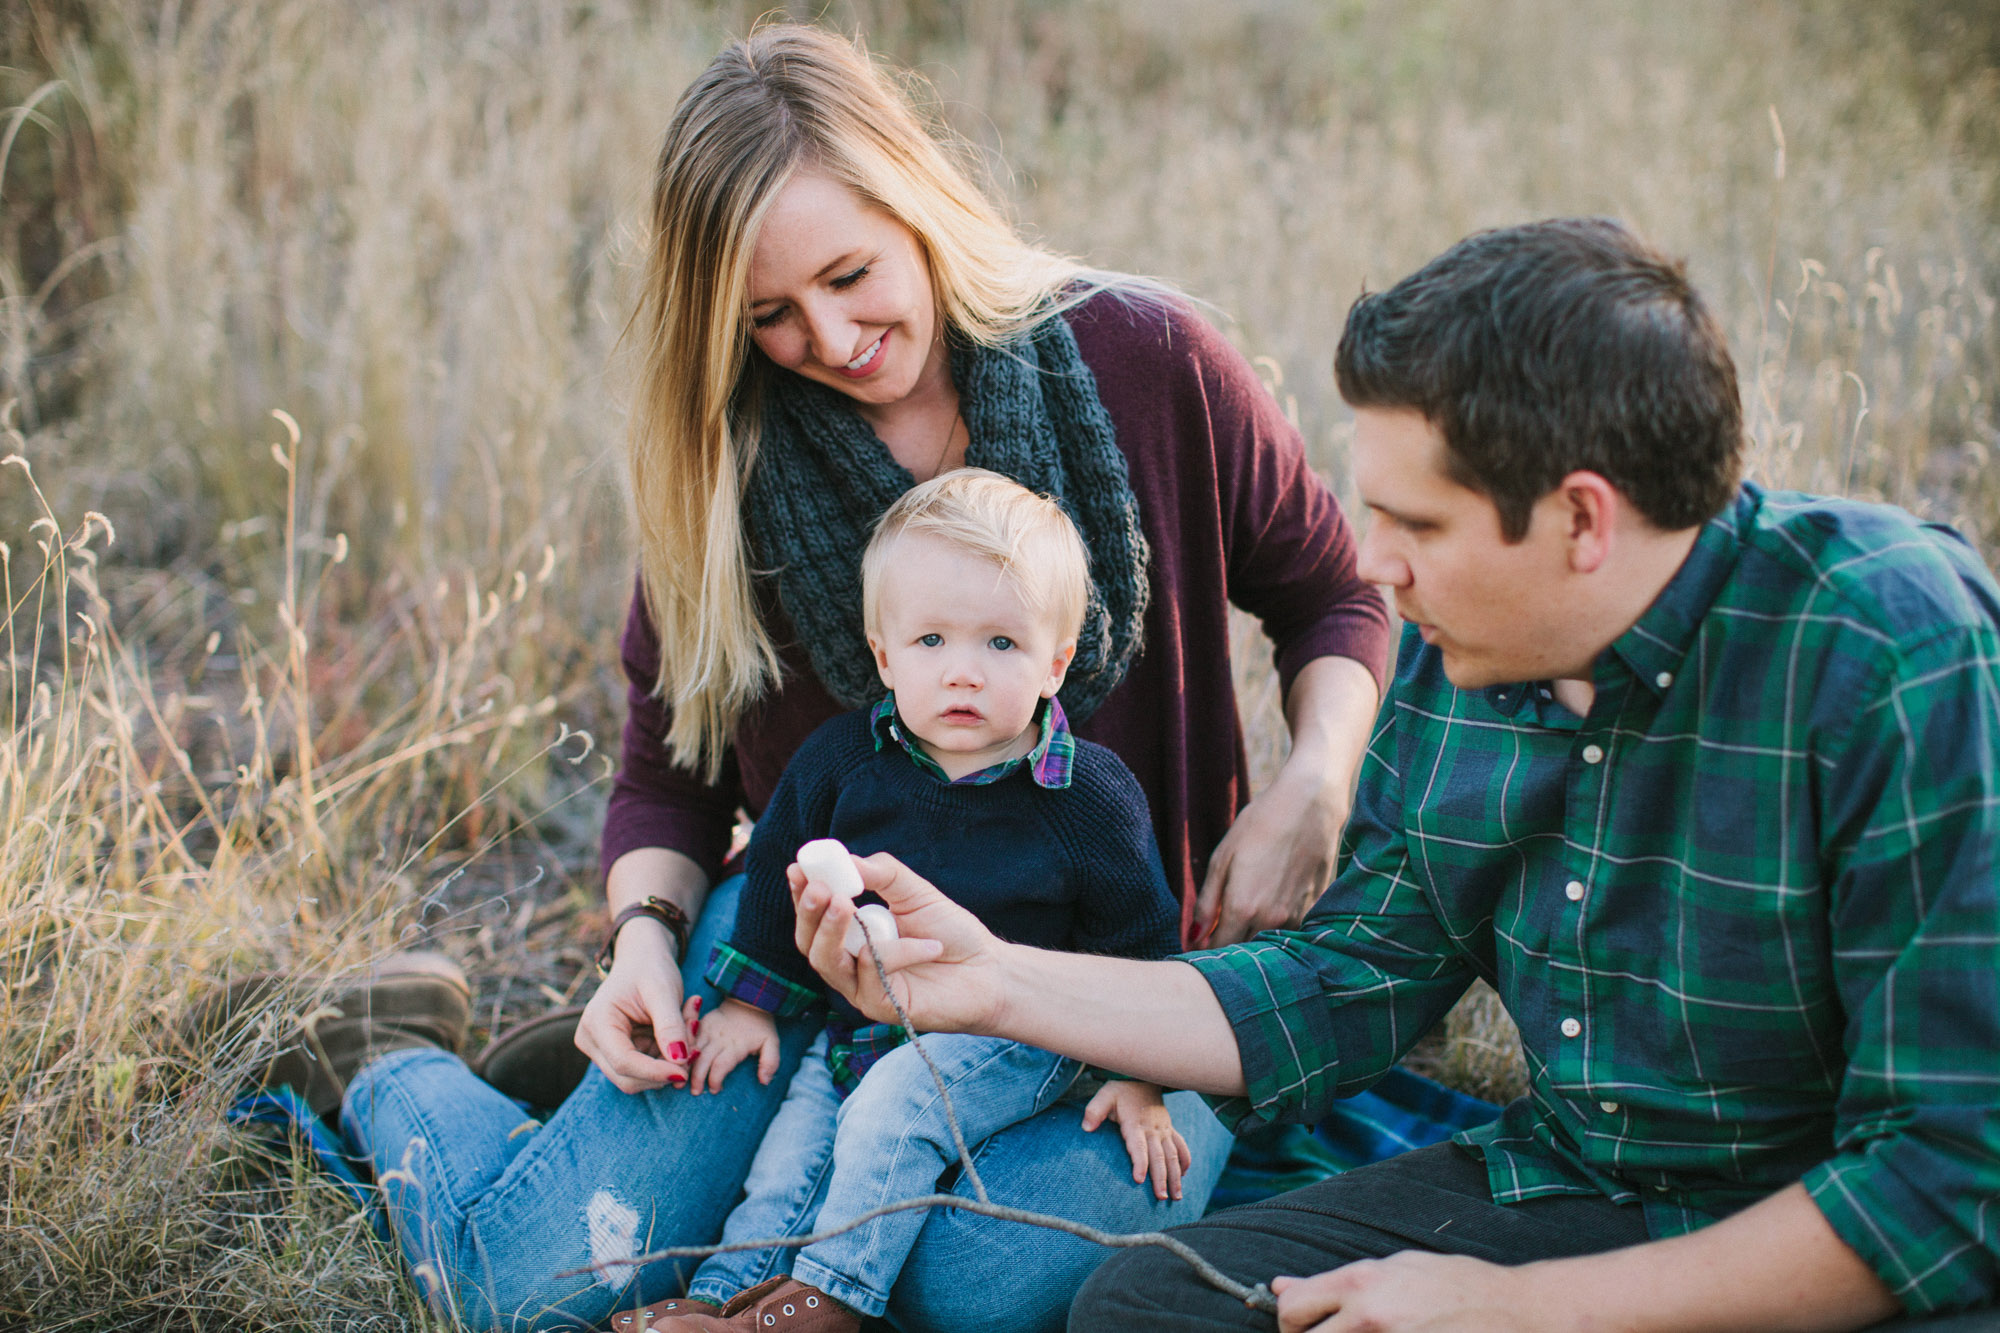 Epper Family Outdoors Sedona Forest Fall | Rennai Hoefer © Ten22 Studio